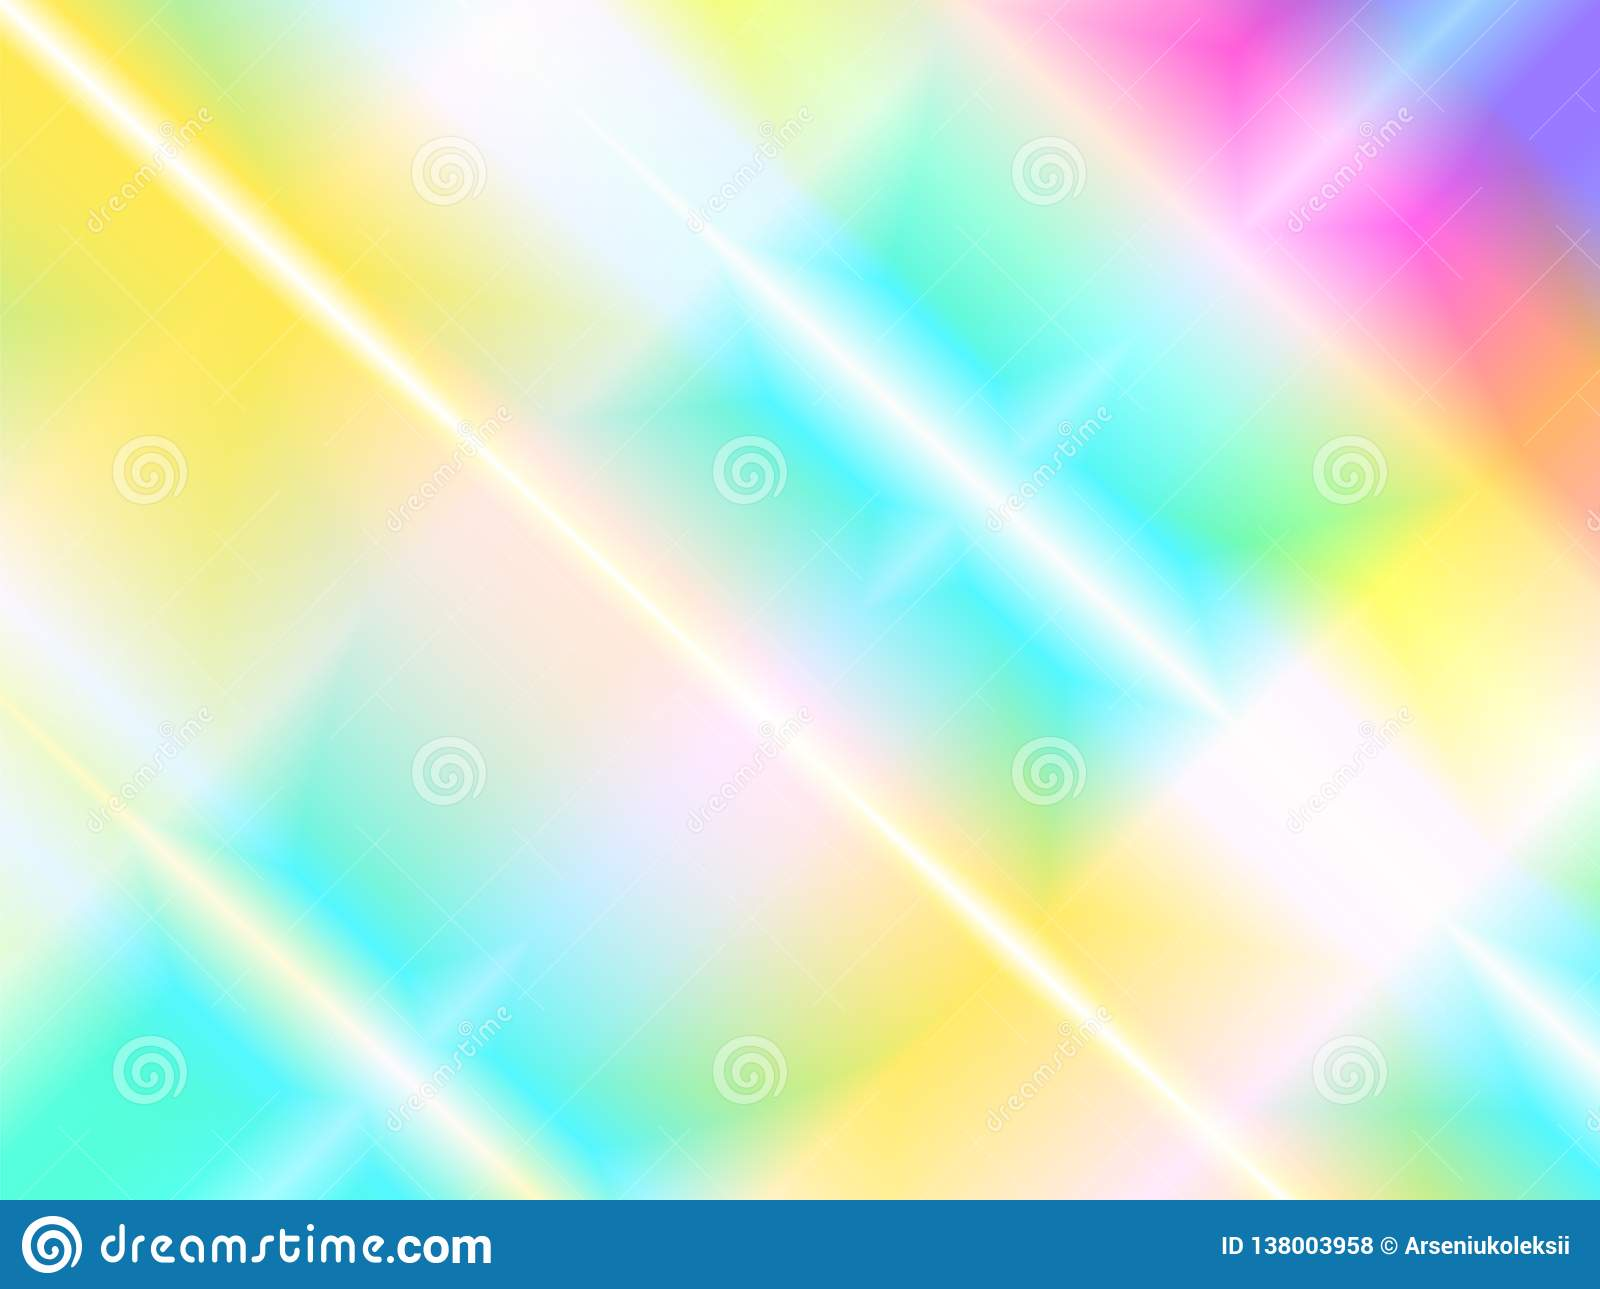 Abstract holographic background with rainbow beams of light from prism dispersion effect